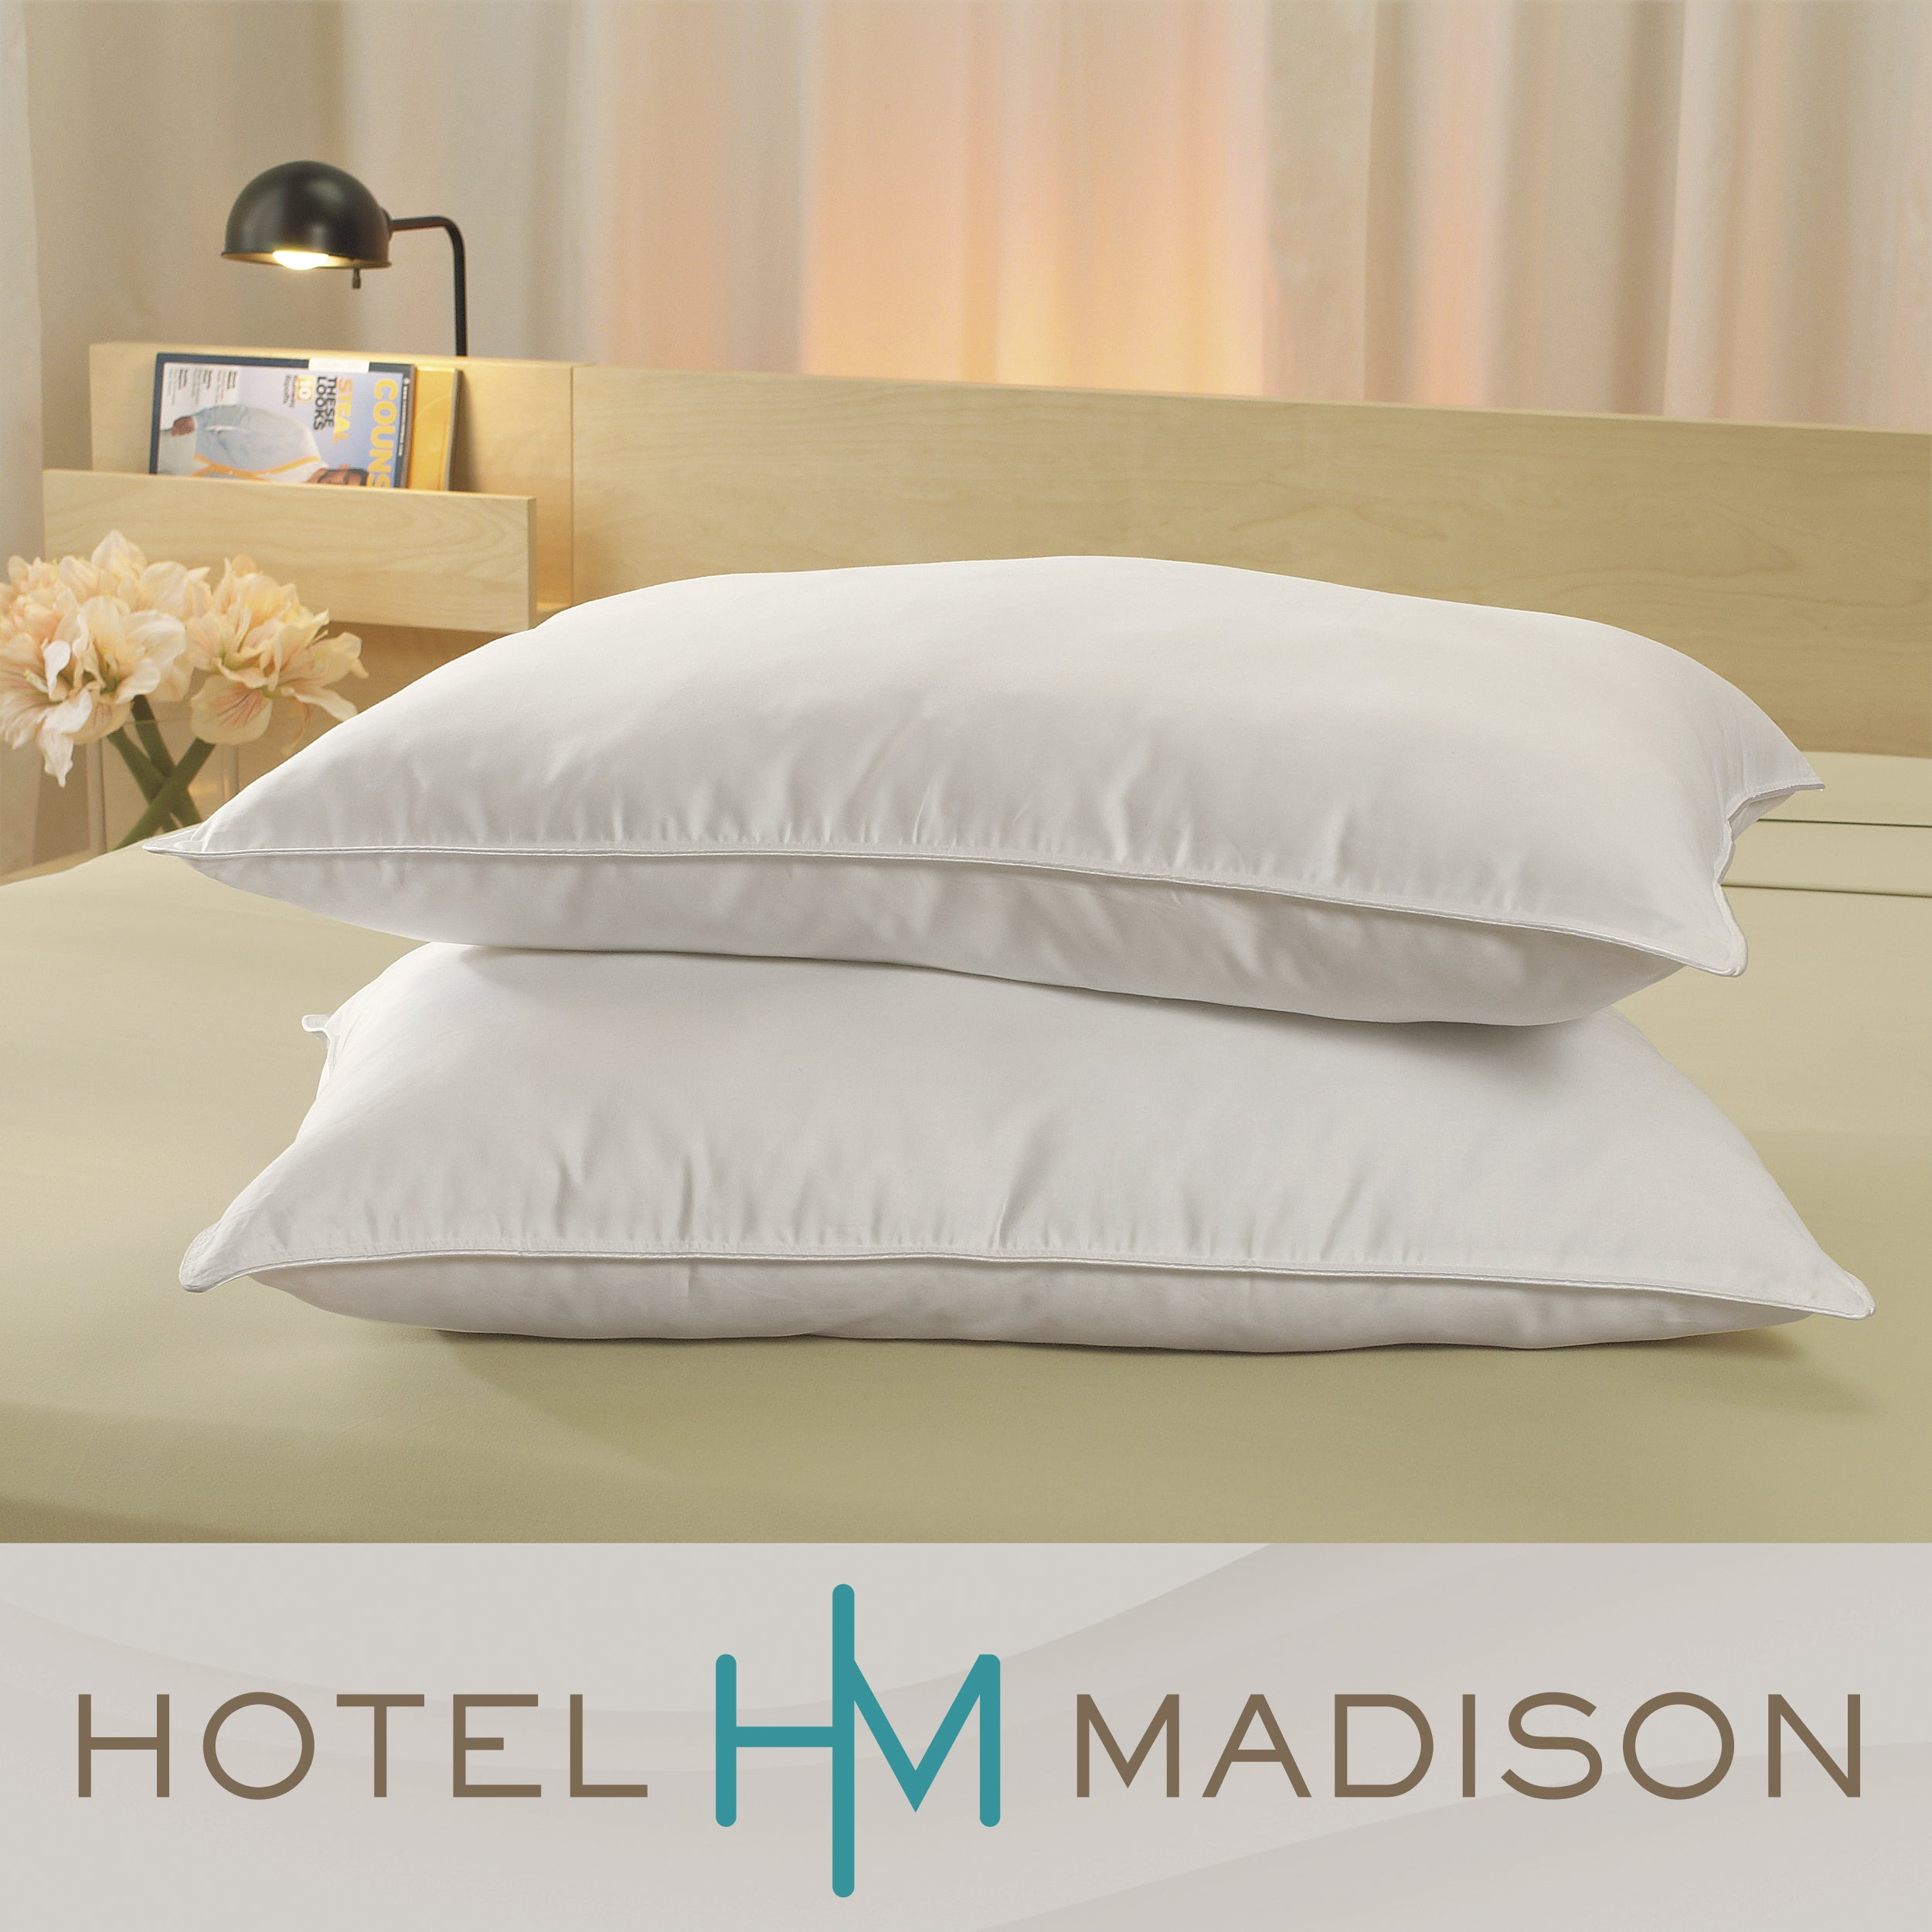 Hotel Madison Luxe Comfort Down Alternative Pillows (Set of 2)